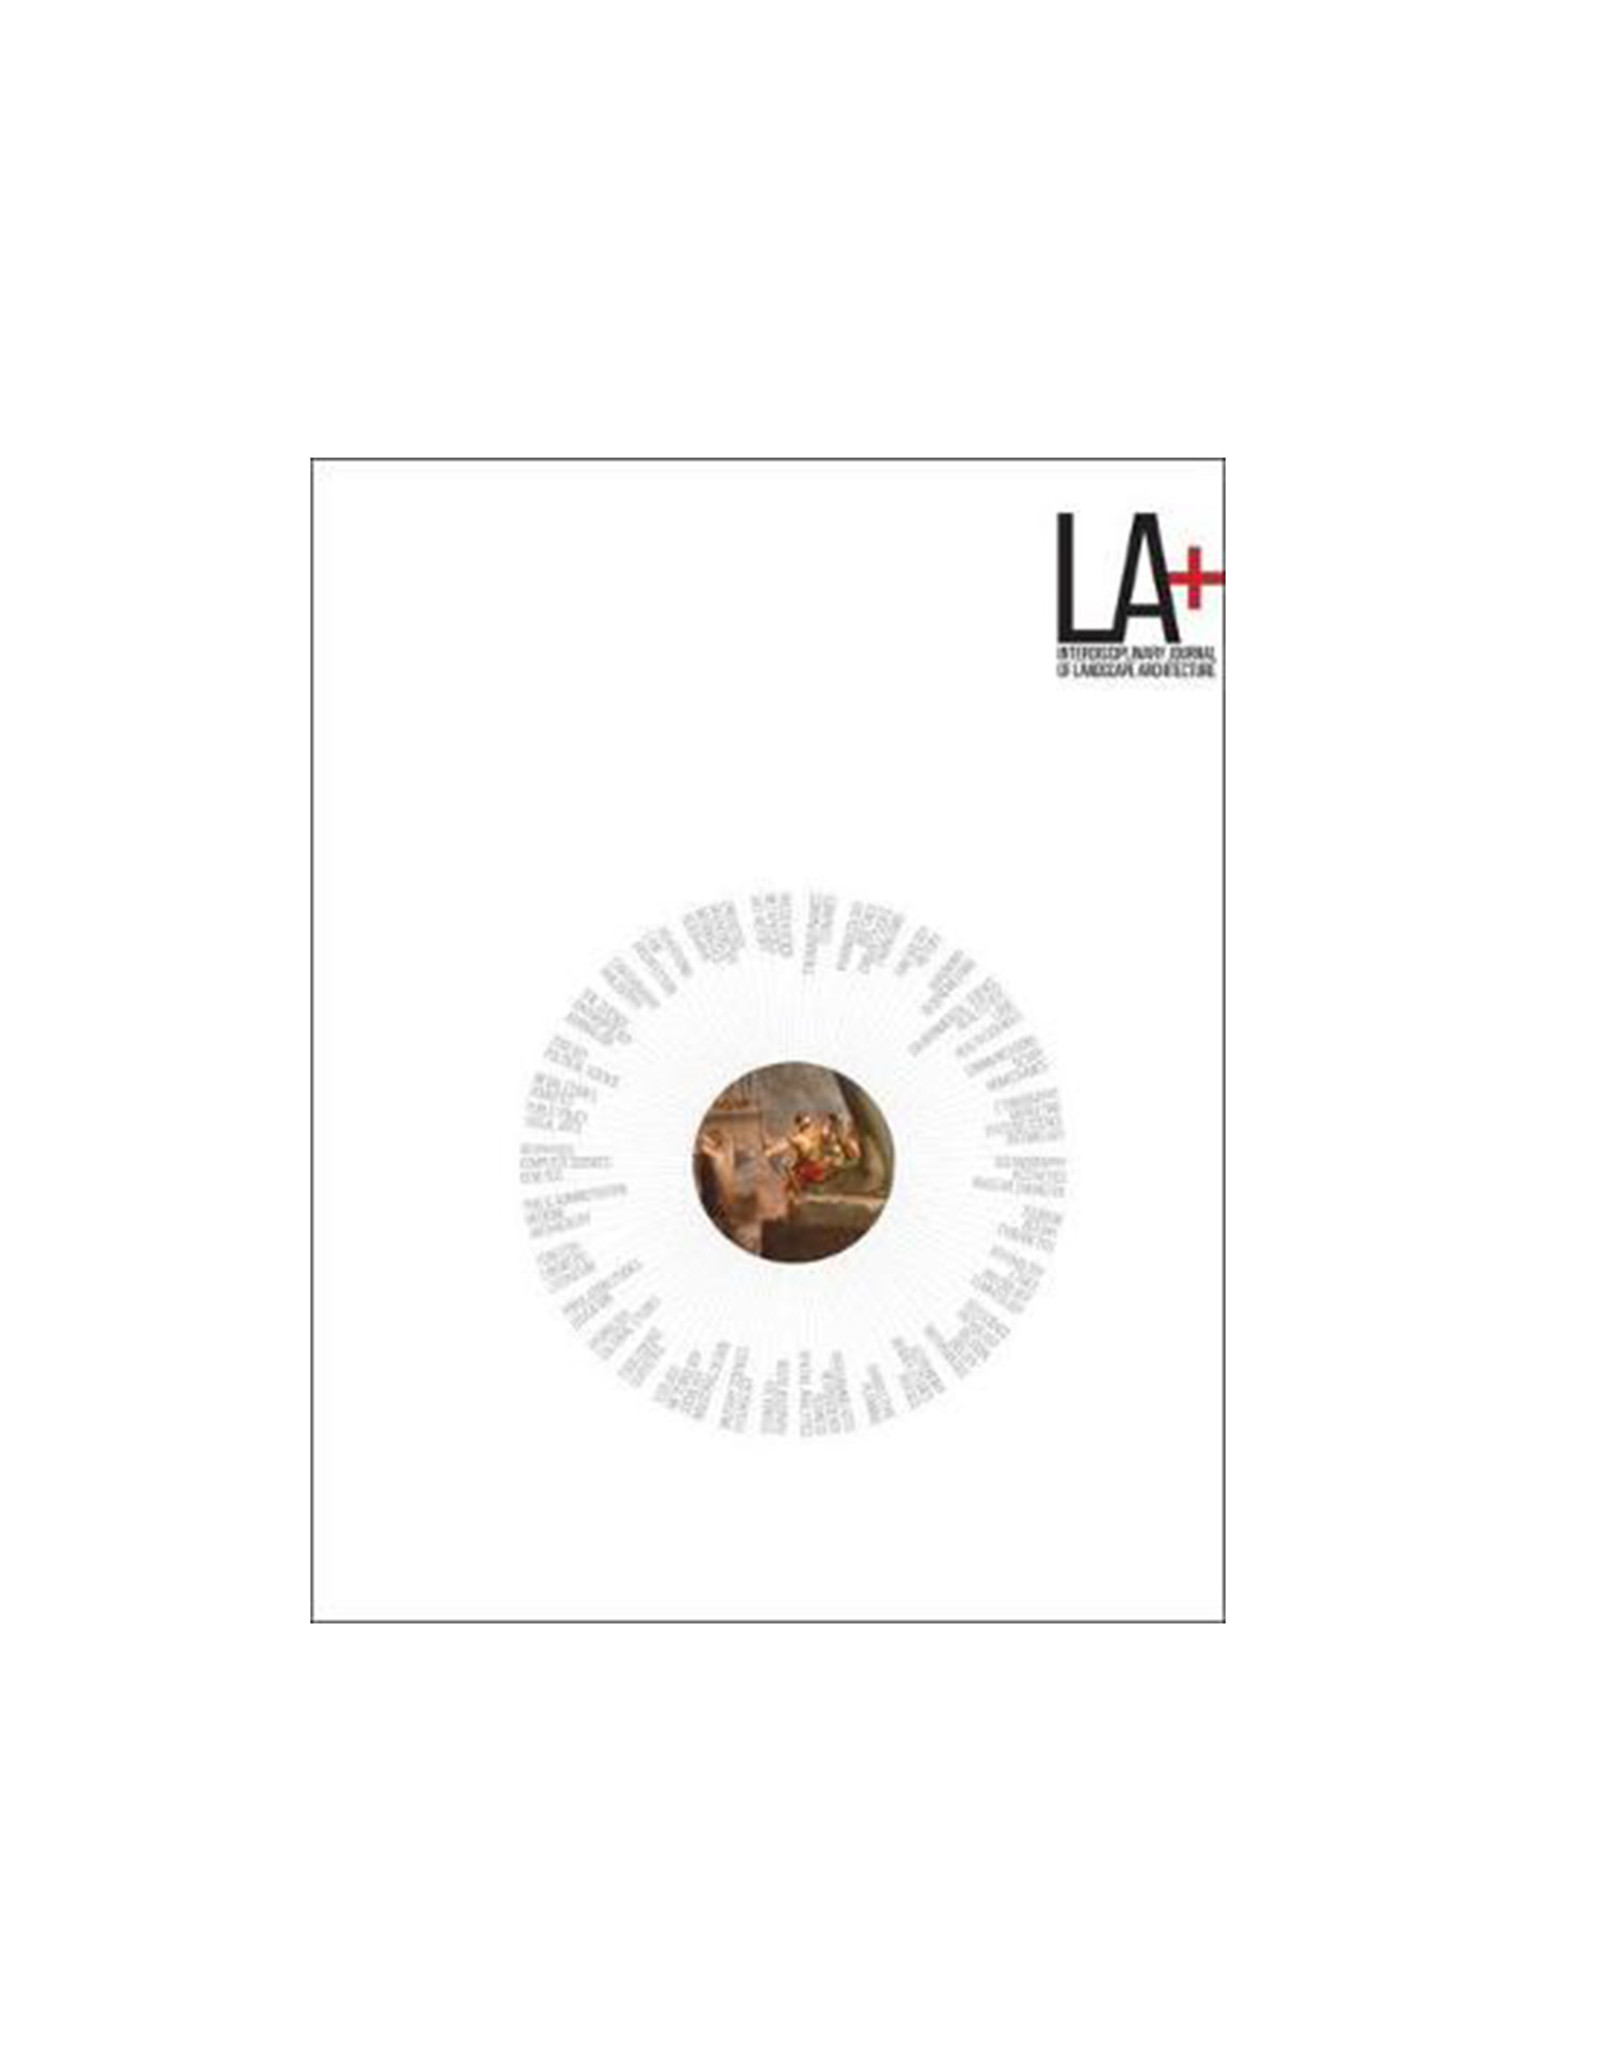 LA+ Interdisciplinary Journal of Landscape Architecture, Imagination